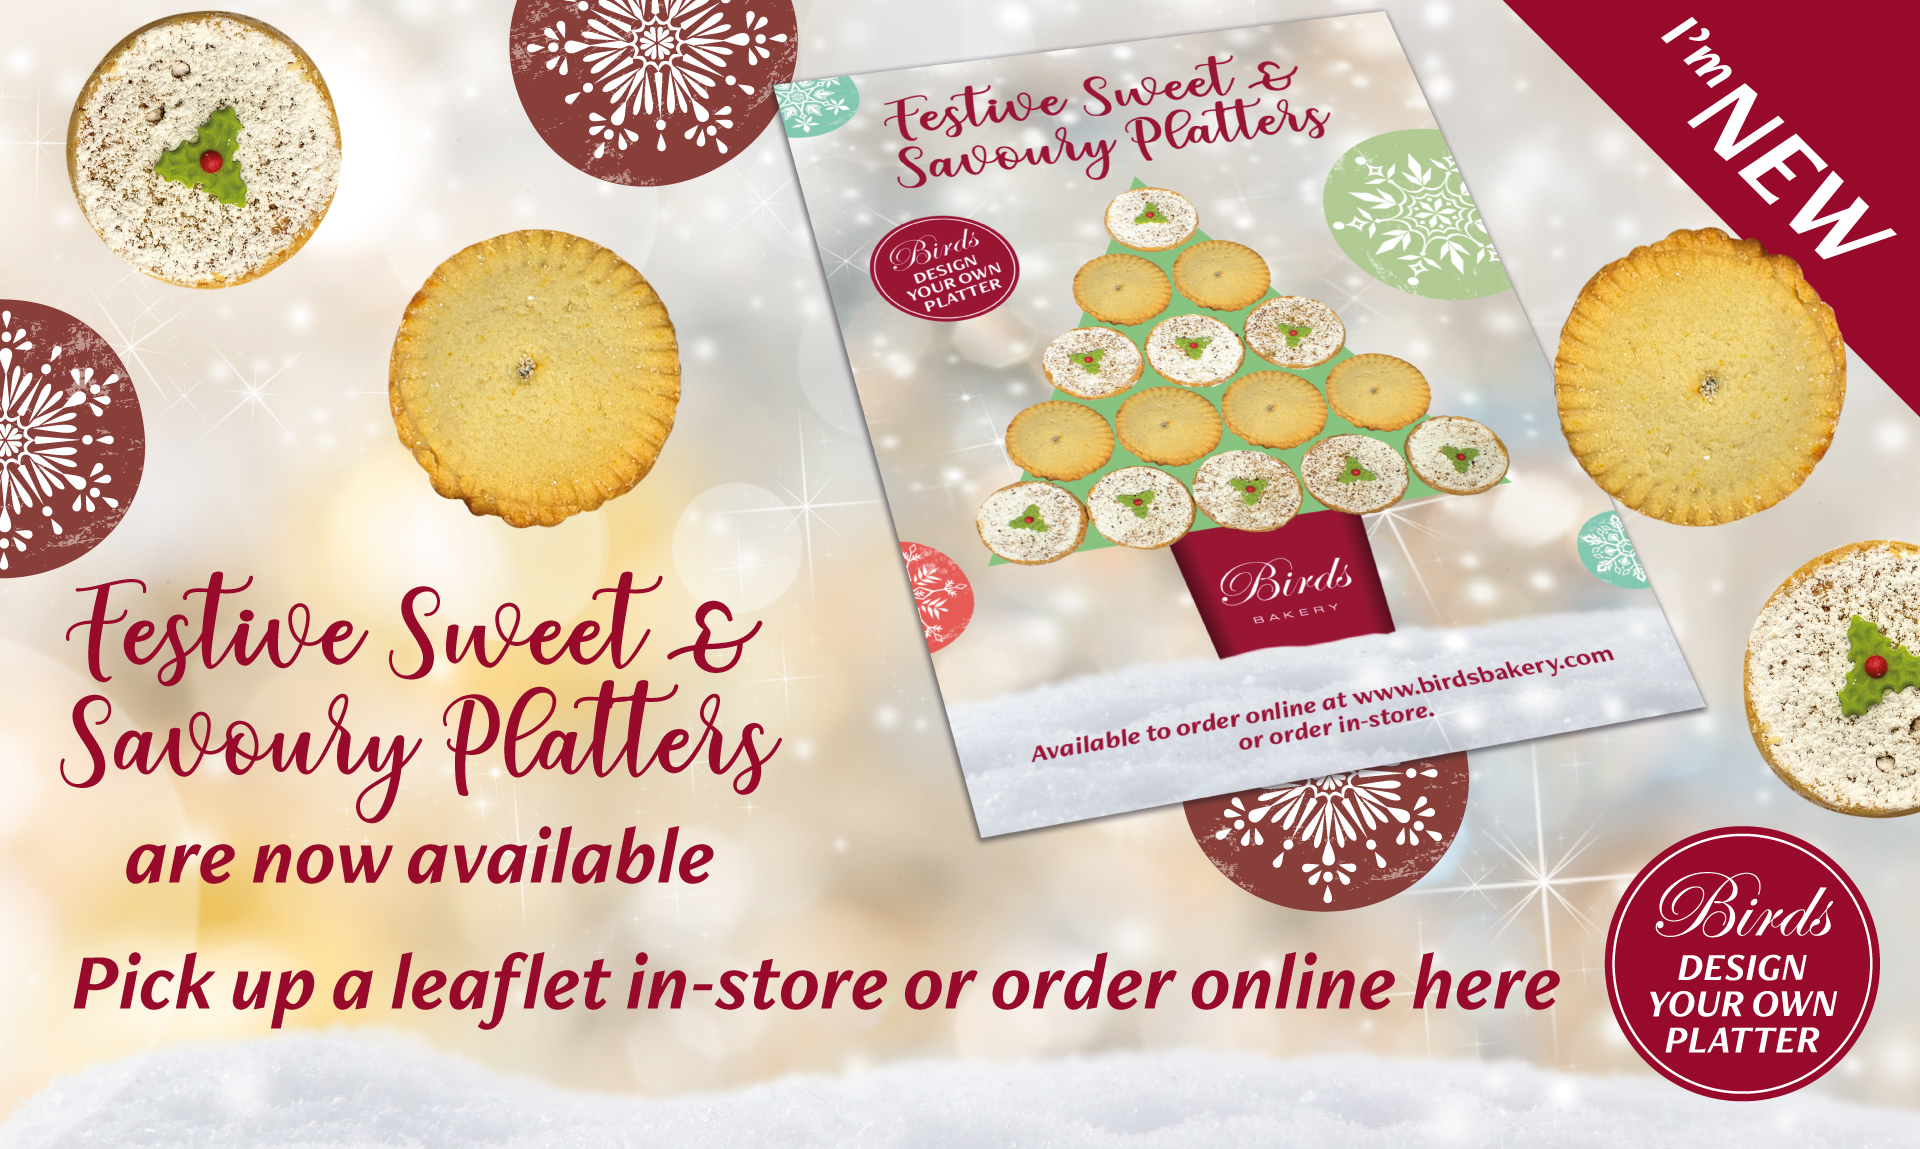 Festive Sweet and Savoury Platters are now available. Pick up a leaflet in store or order online here